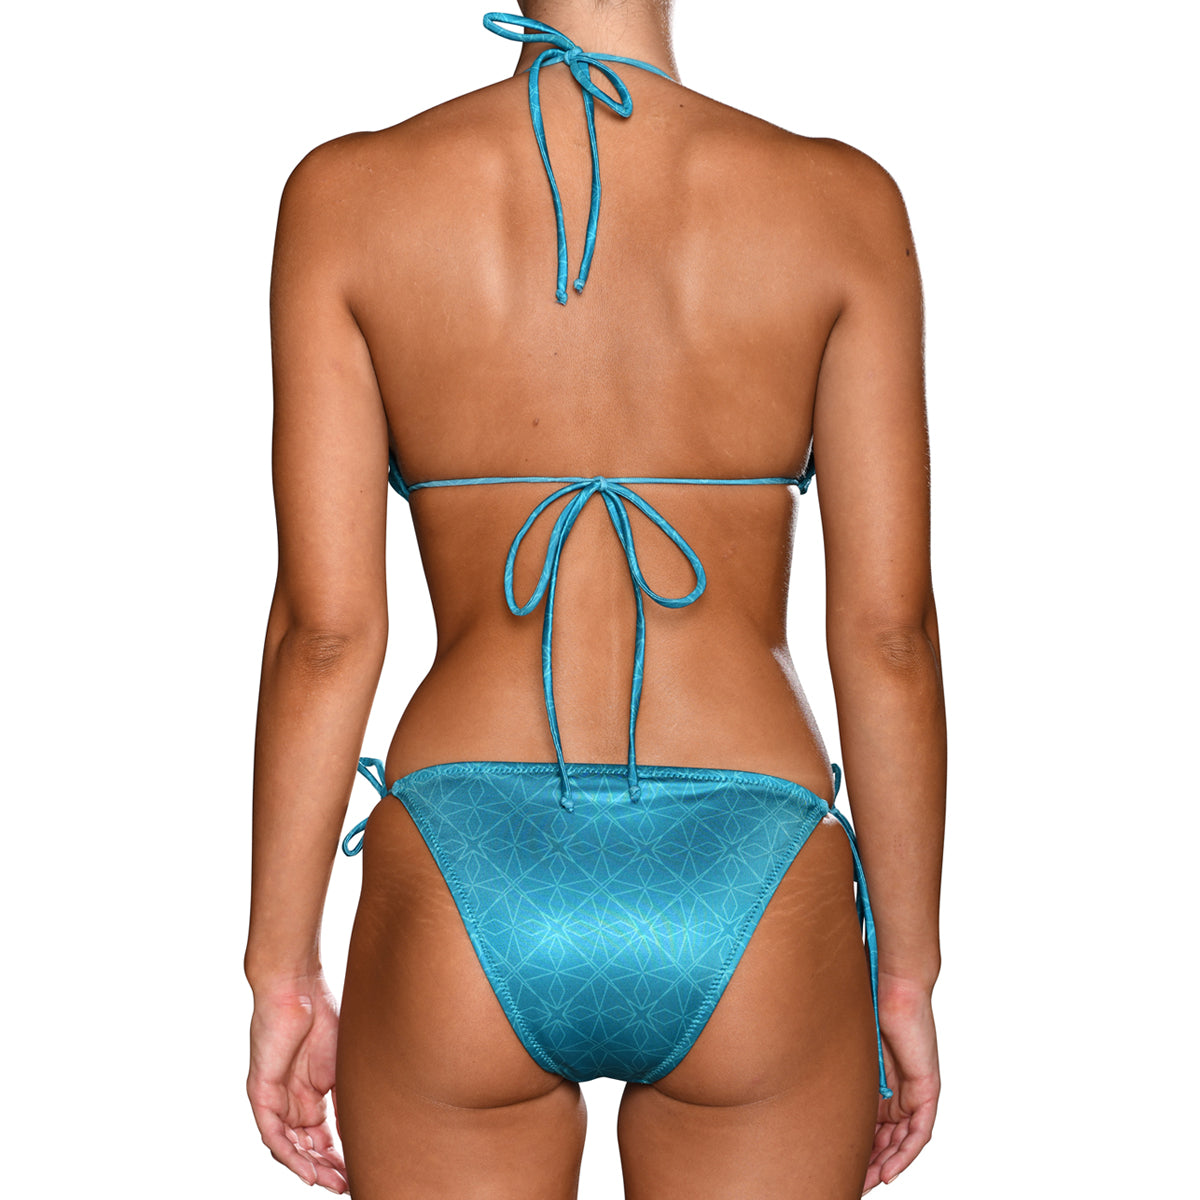 Cerulean Cyan Tie Side Triangle Bikini